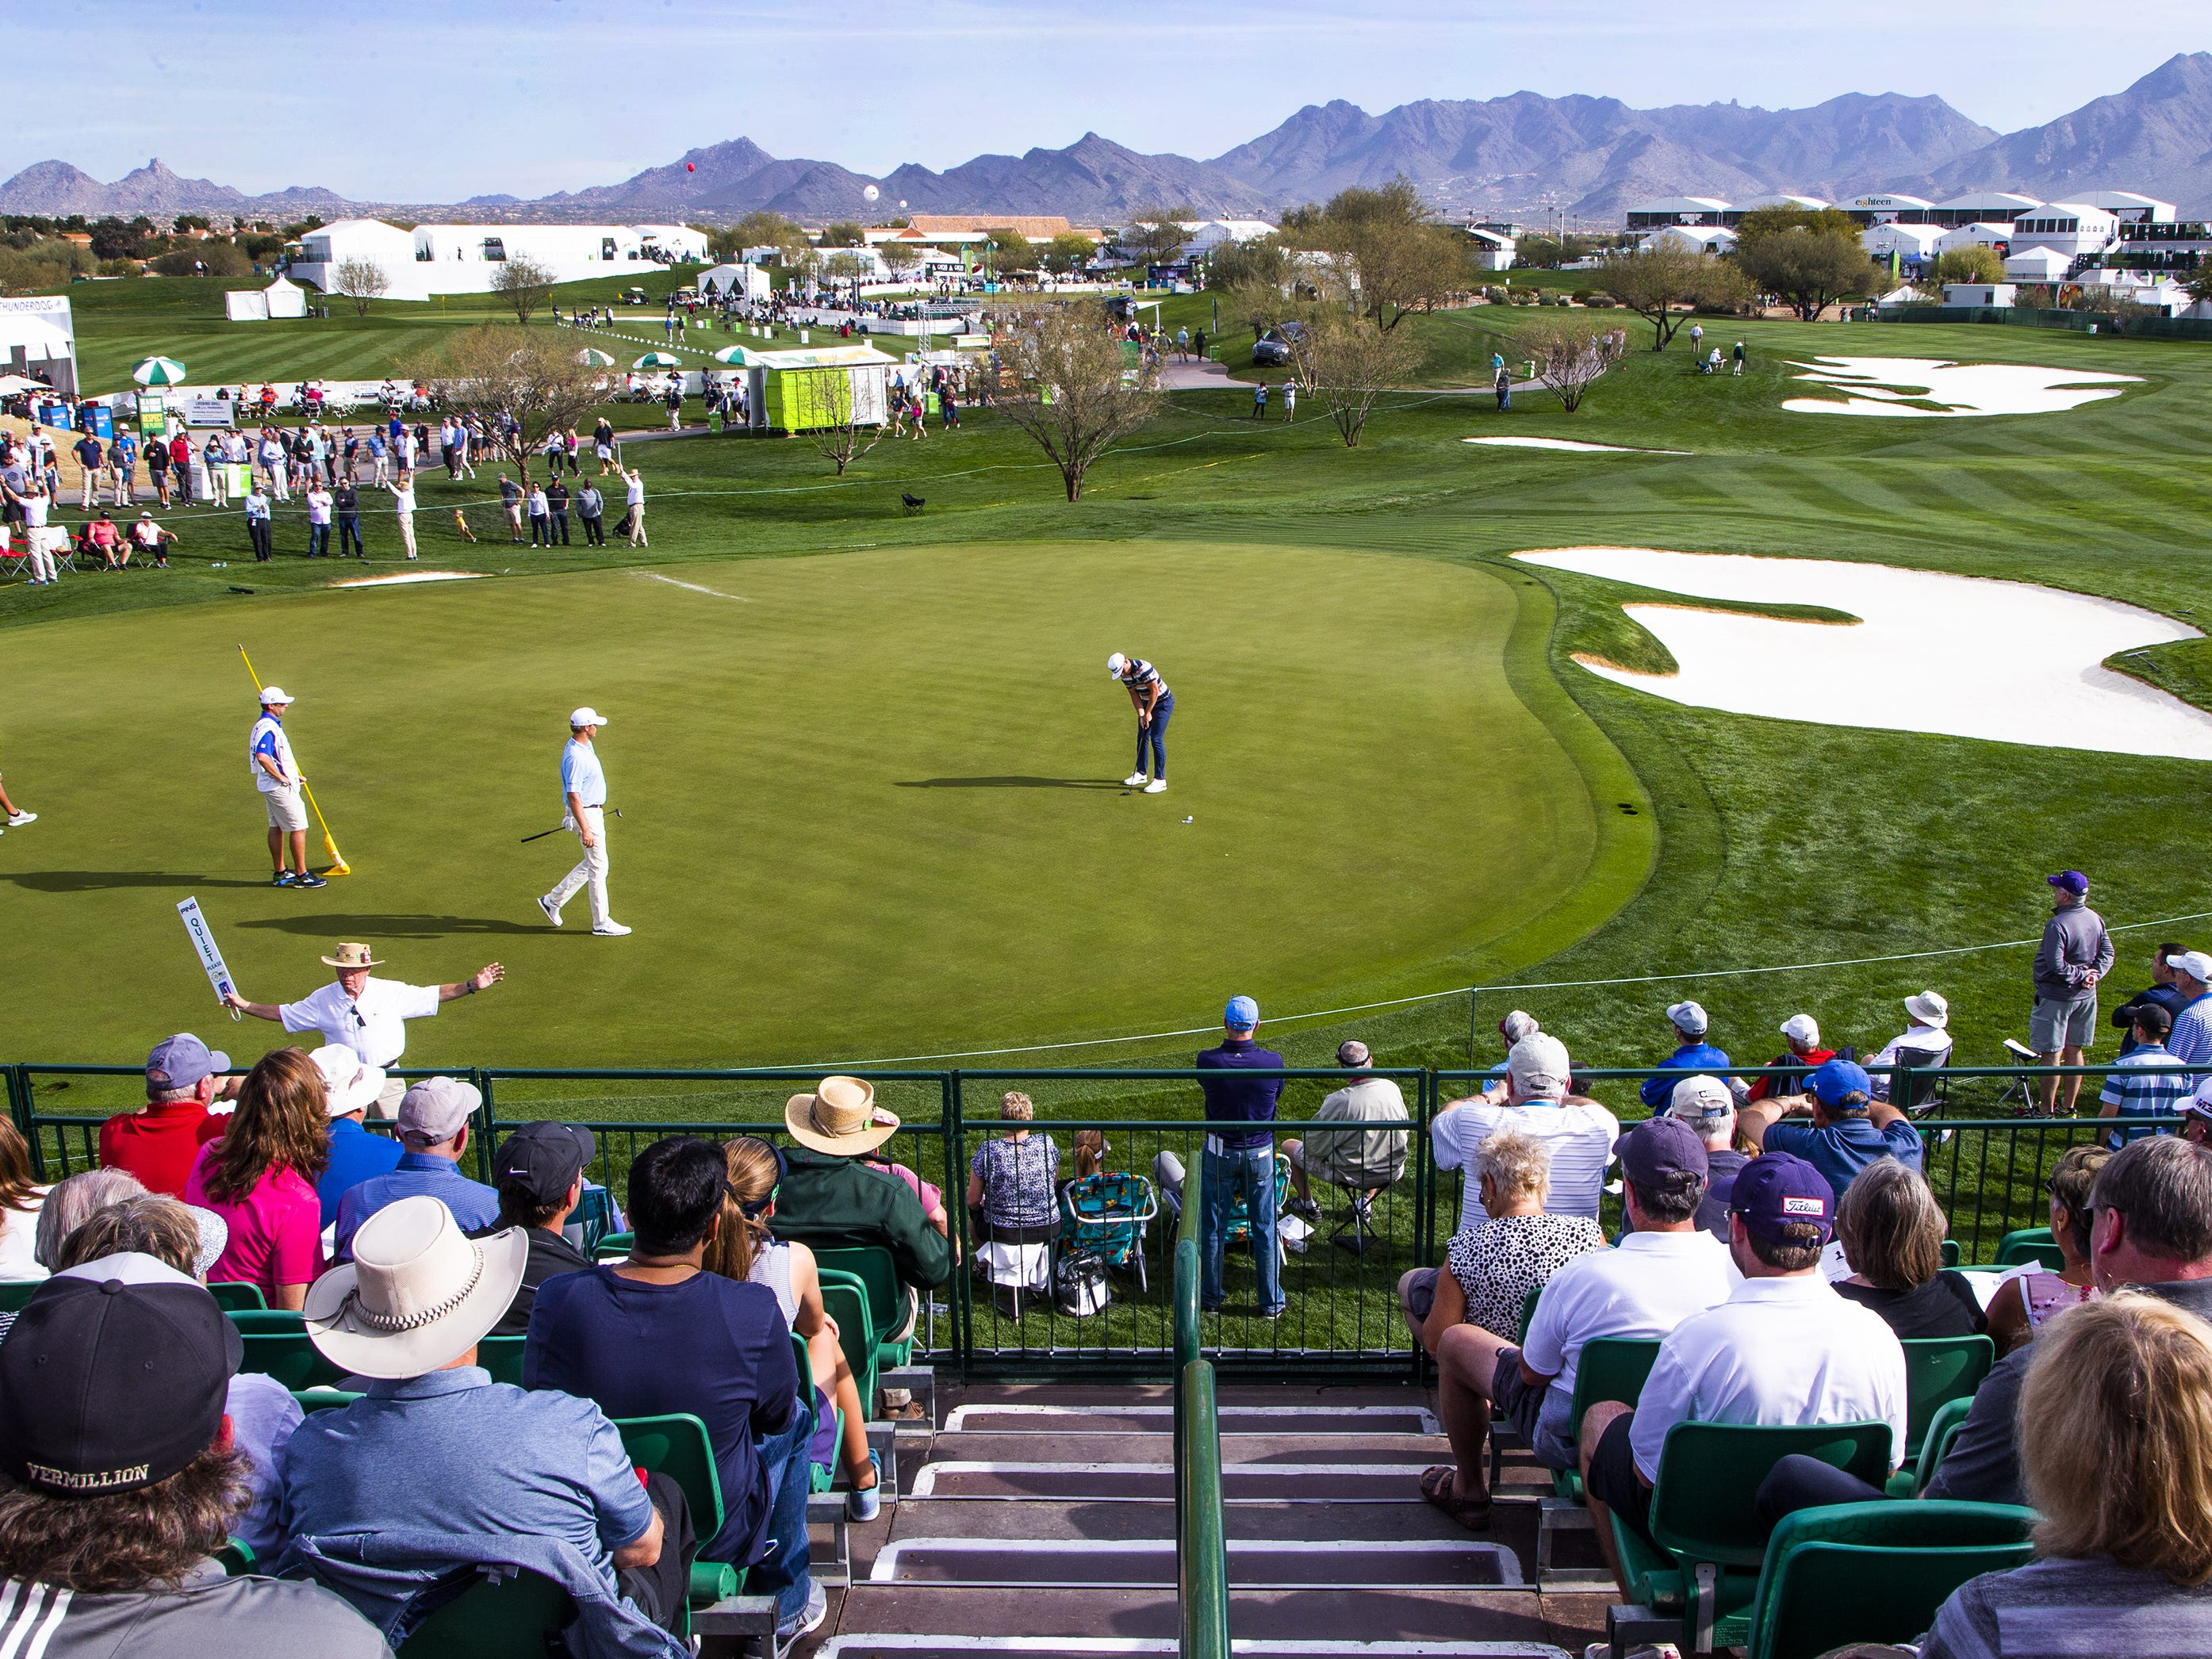 Fans watch action on the 10th hole during the first round of the Waste Management Phoenix Open at the TPC Scottsdale,  January 31, 2019.